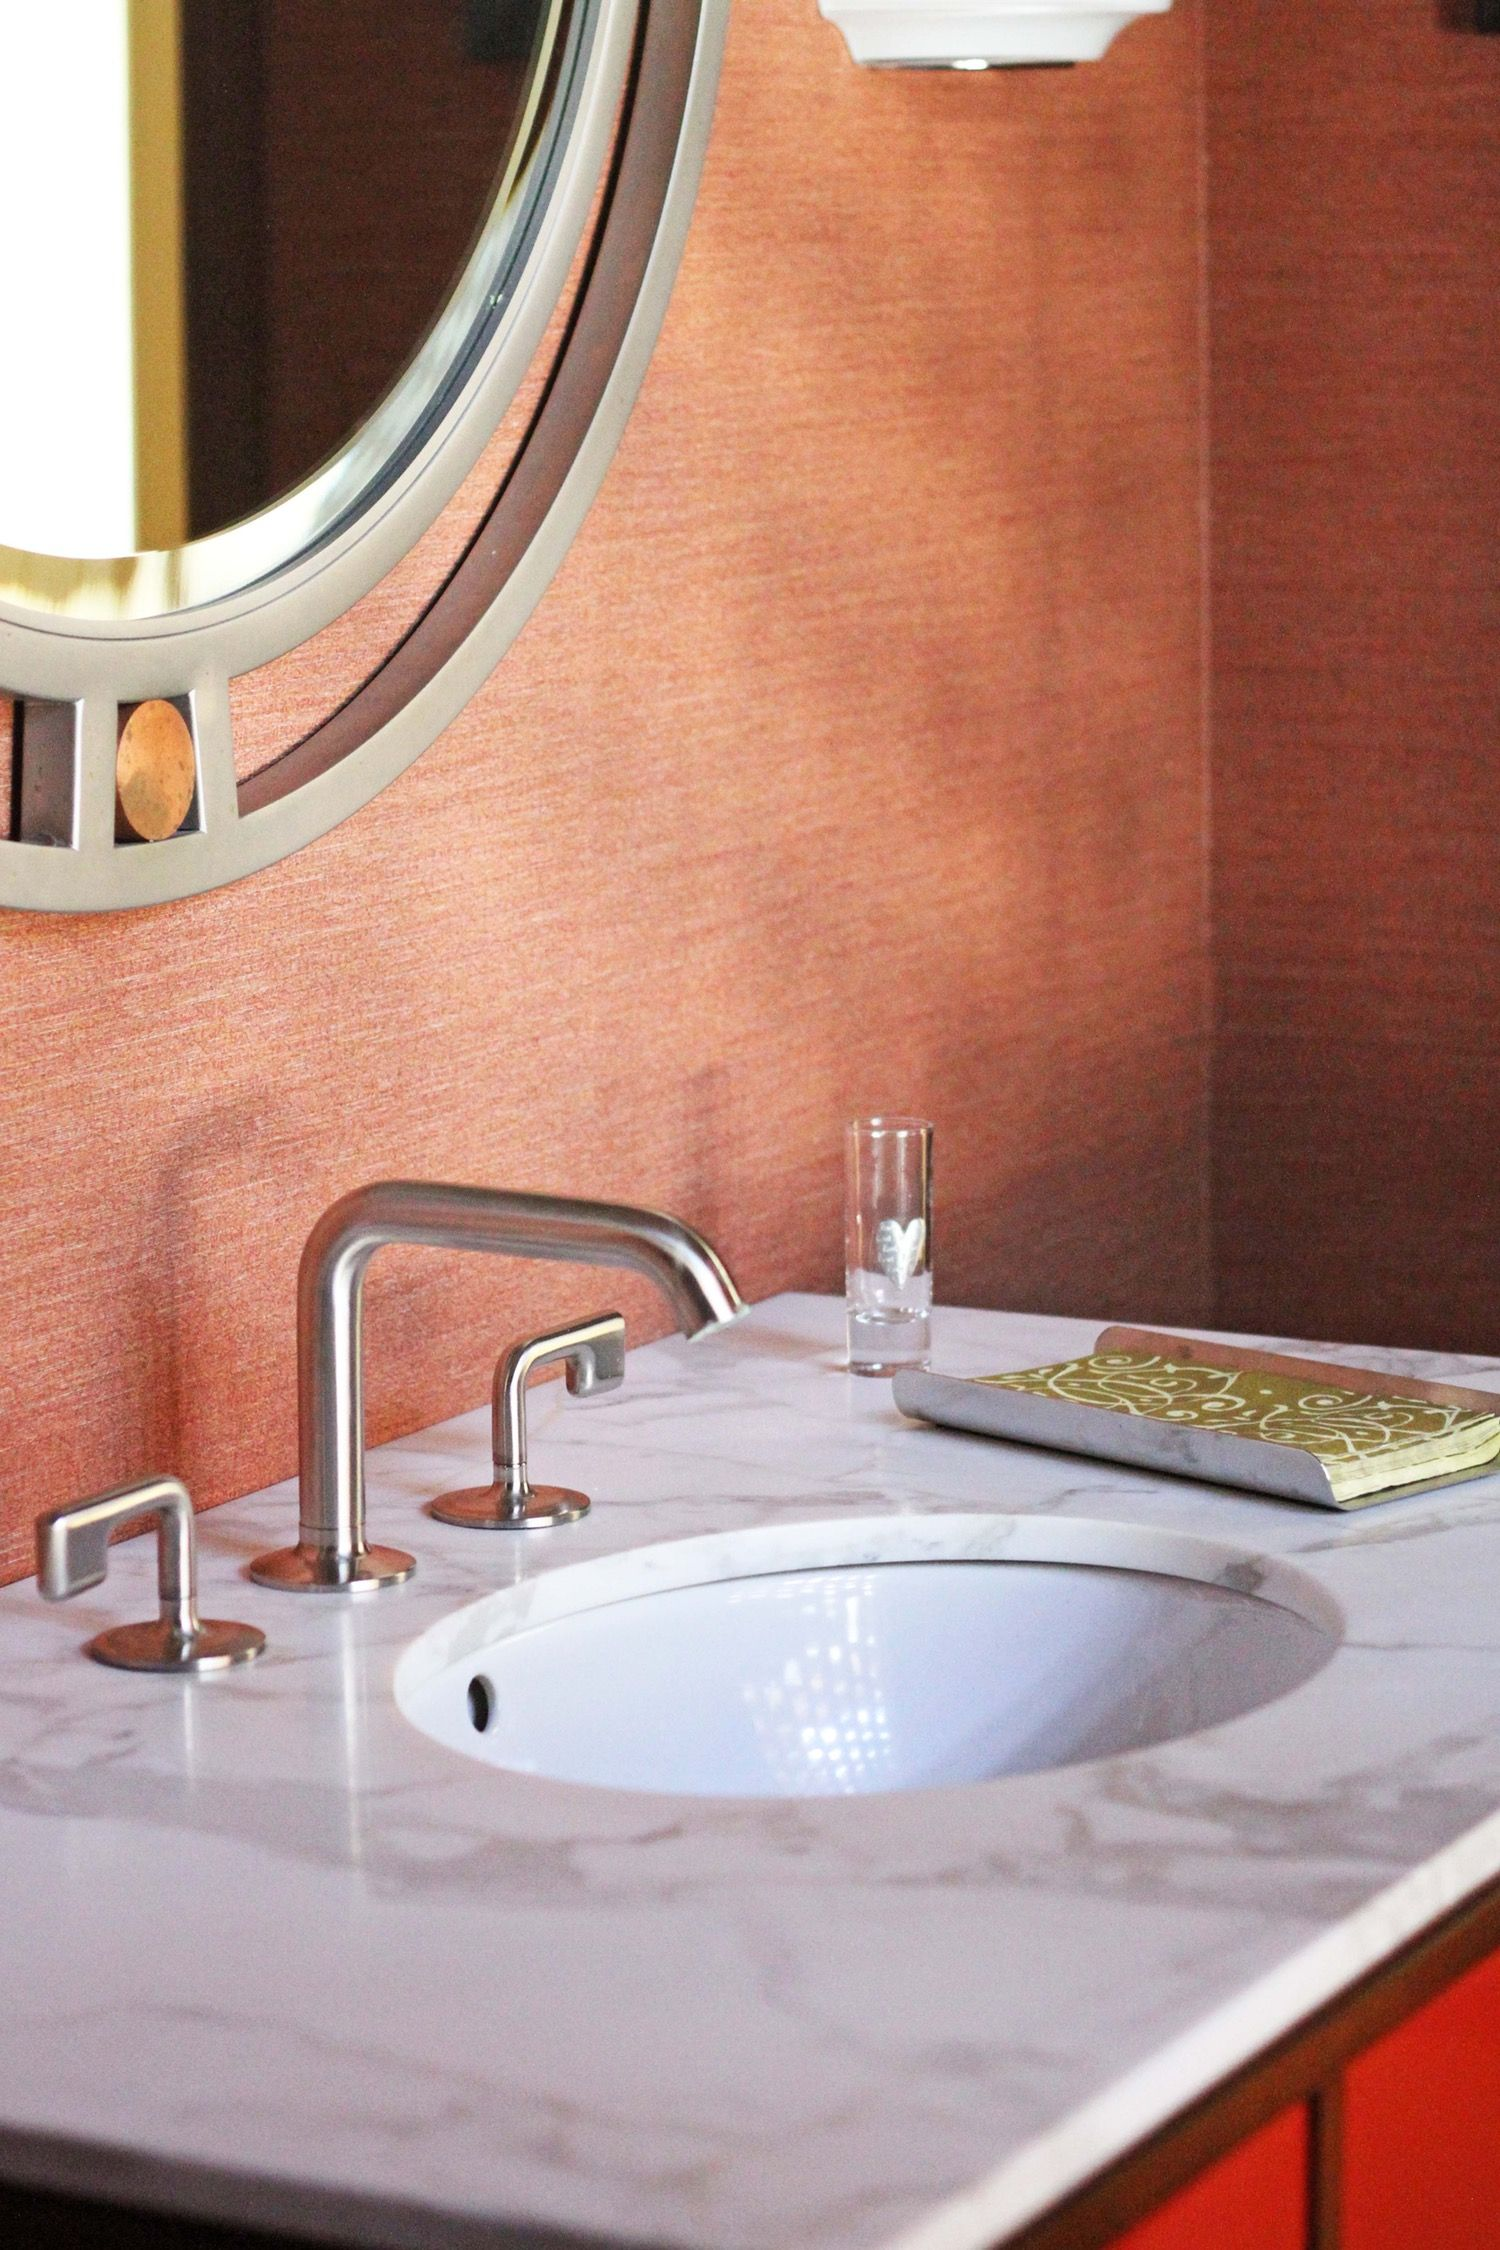 How To Naturally Unclog The Bathroom Sink Bathroom Sink Drain Unclog Bathroom Sinks Sink